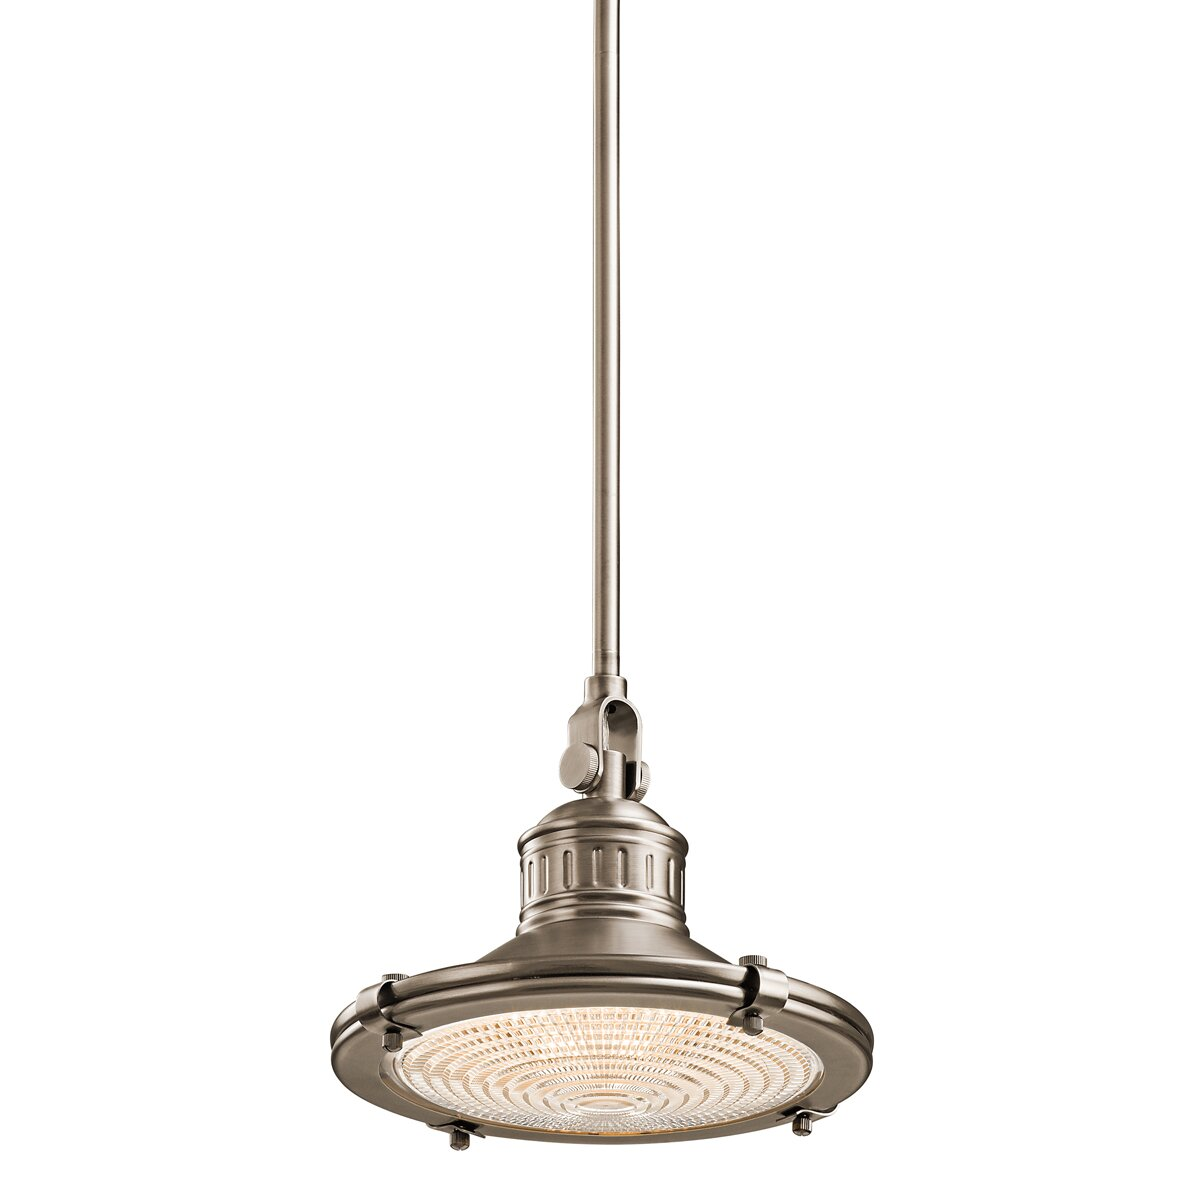 Kichler lighting sayre pendant : Kichler sayre light pendant reviews wayfair